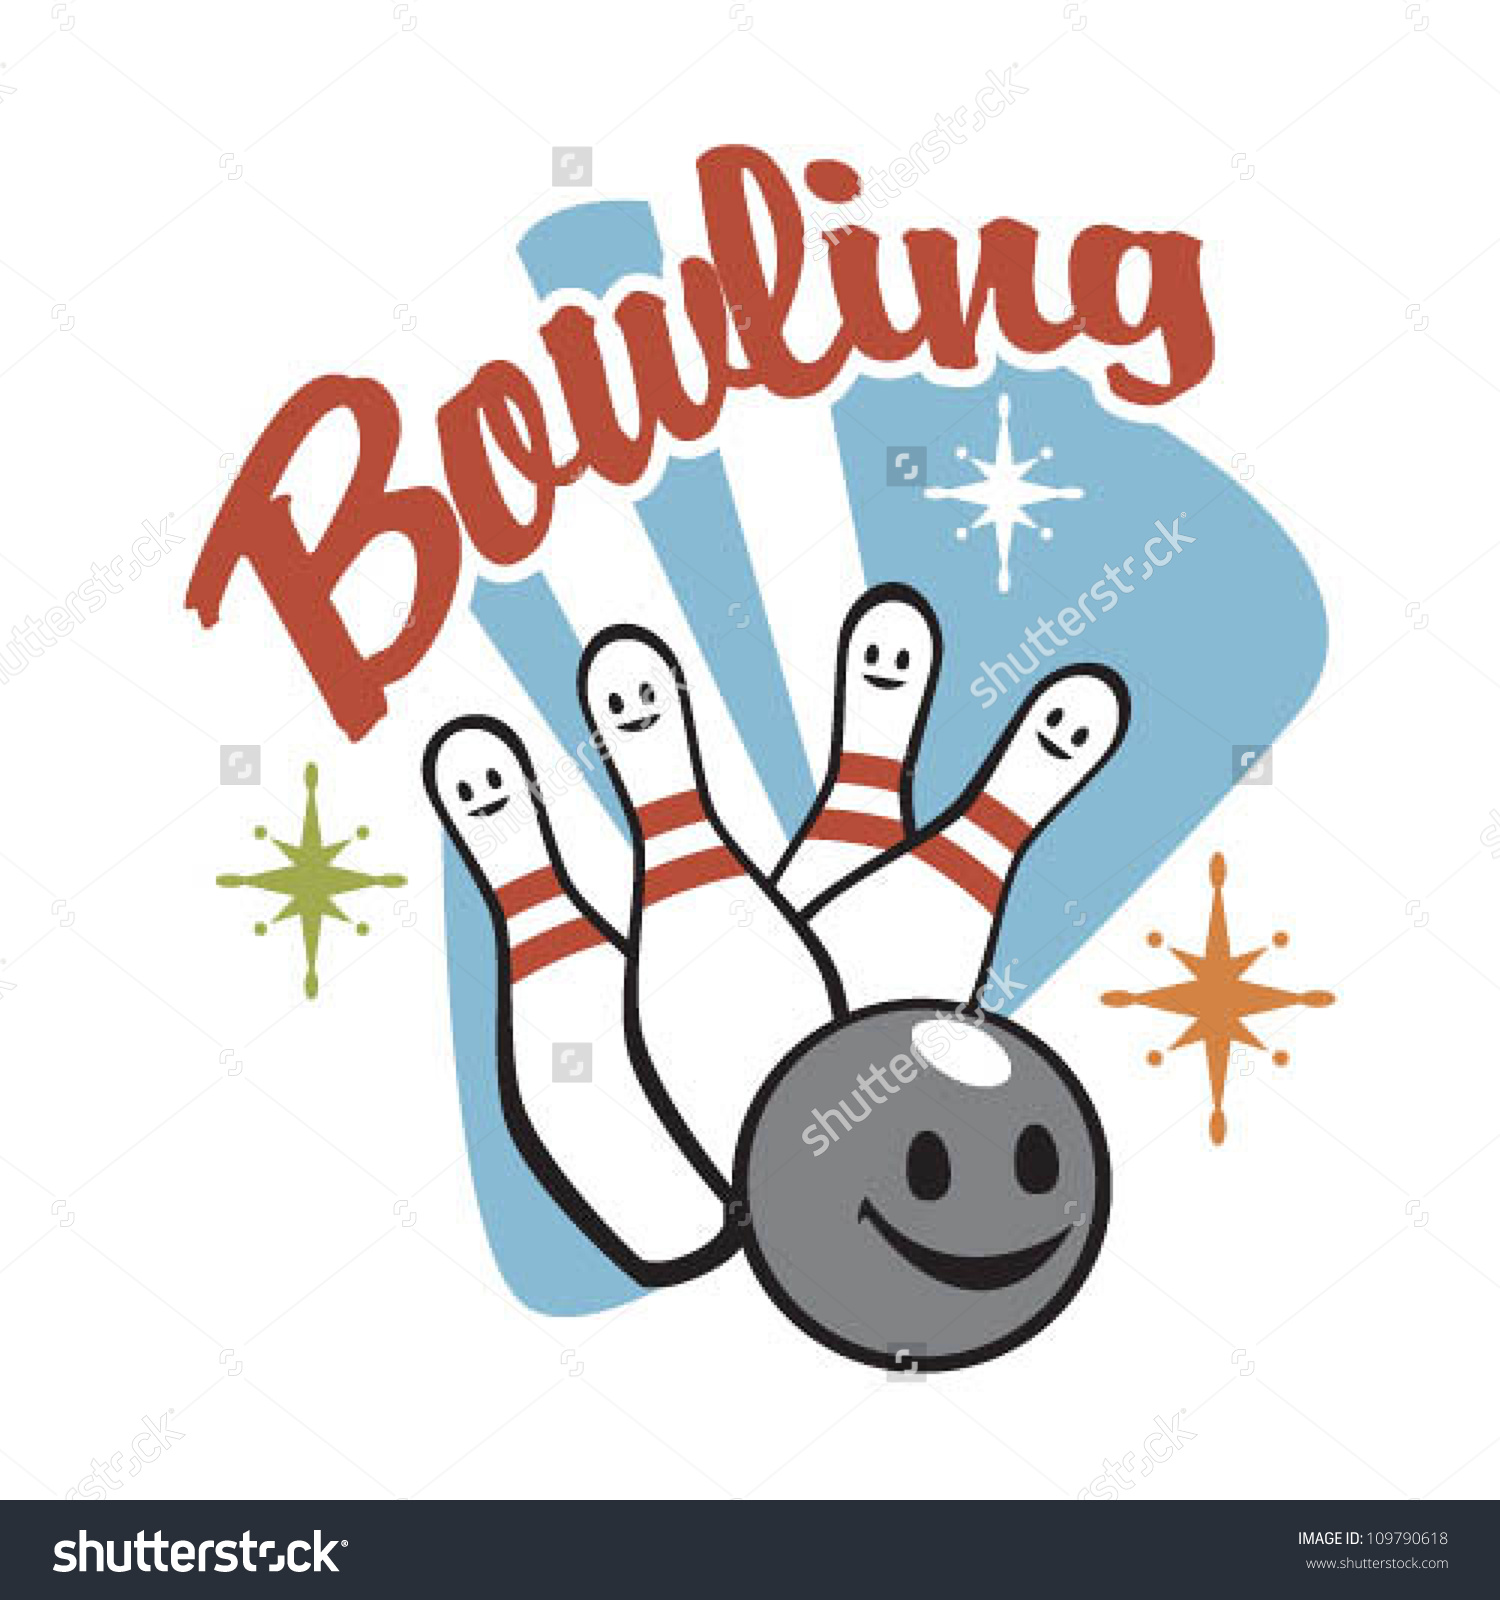 Vintage bowling logo clipart jpg black and white Vintage bowling logo clipart - ClipartFest jpg black and white